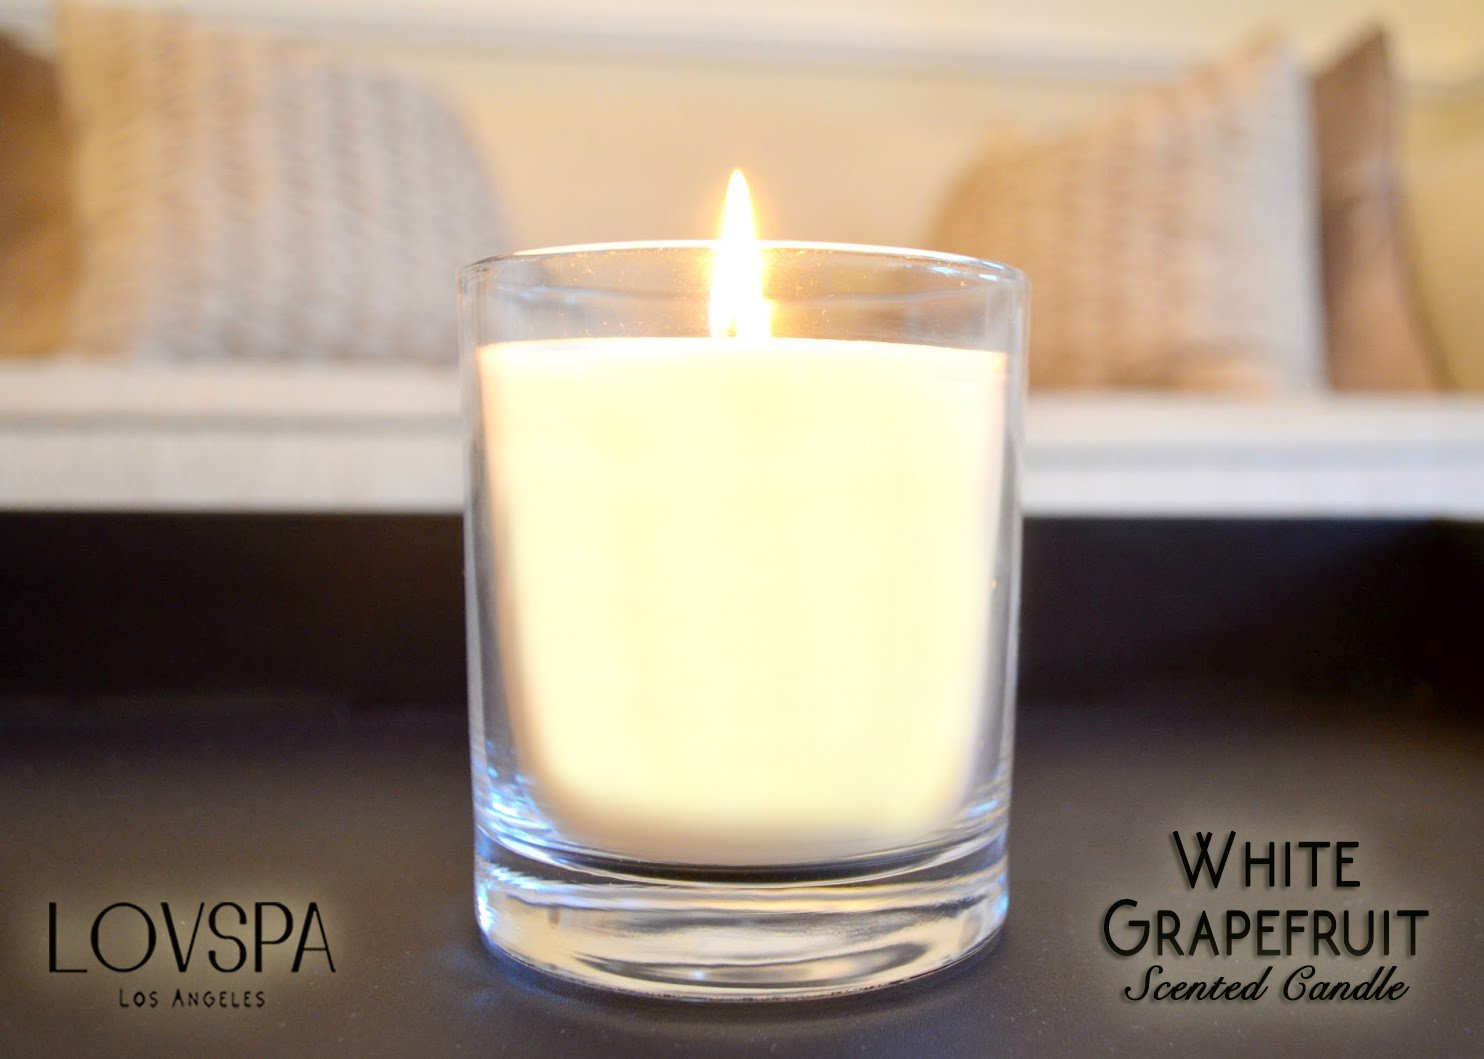 LOVSPA White Grapefruit Aromatherapy Candle | Tart Pomelo Grapefruit, Lily of The Valley & Coriander Blossom | Natural & Long-Lasting | Made in The USA